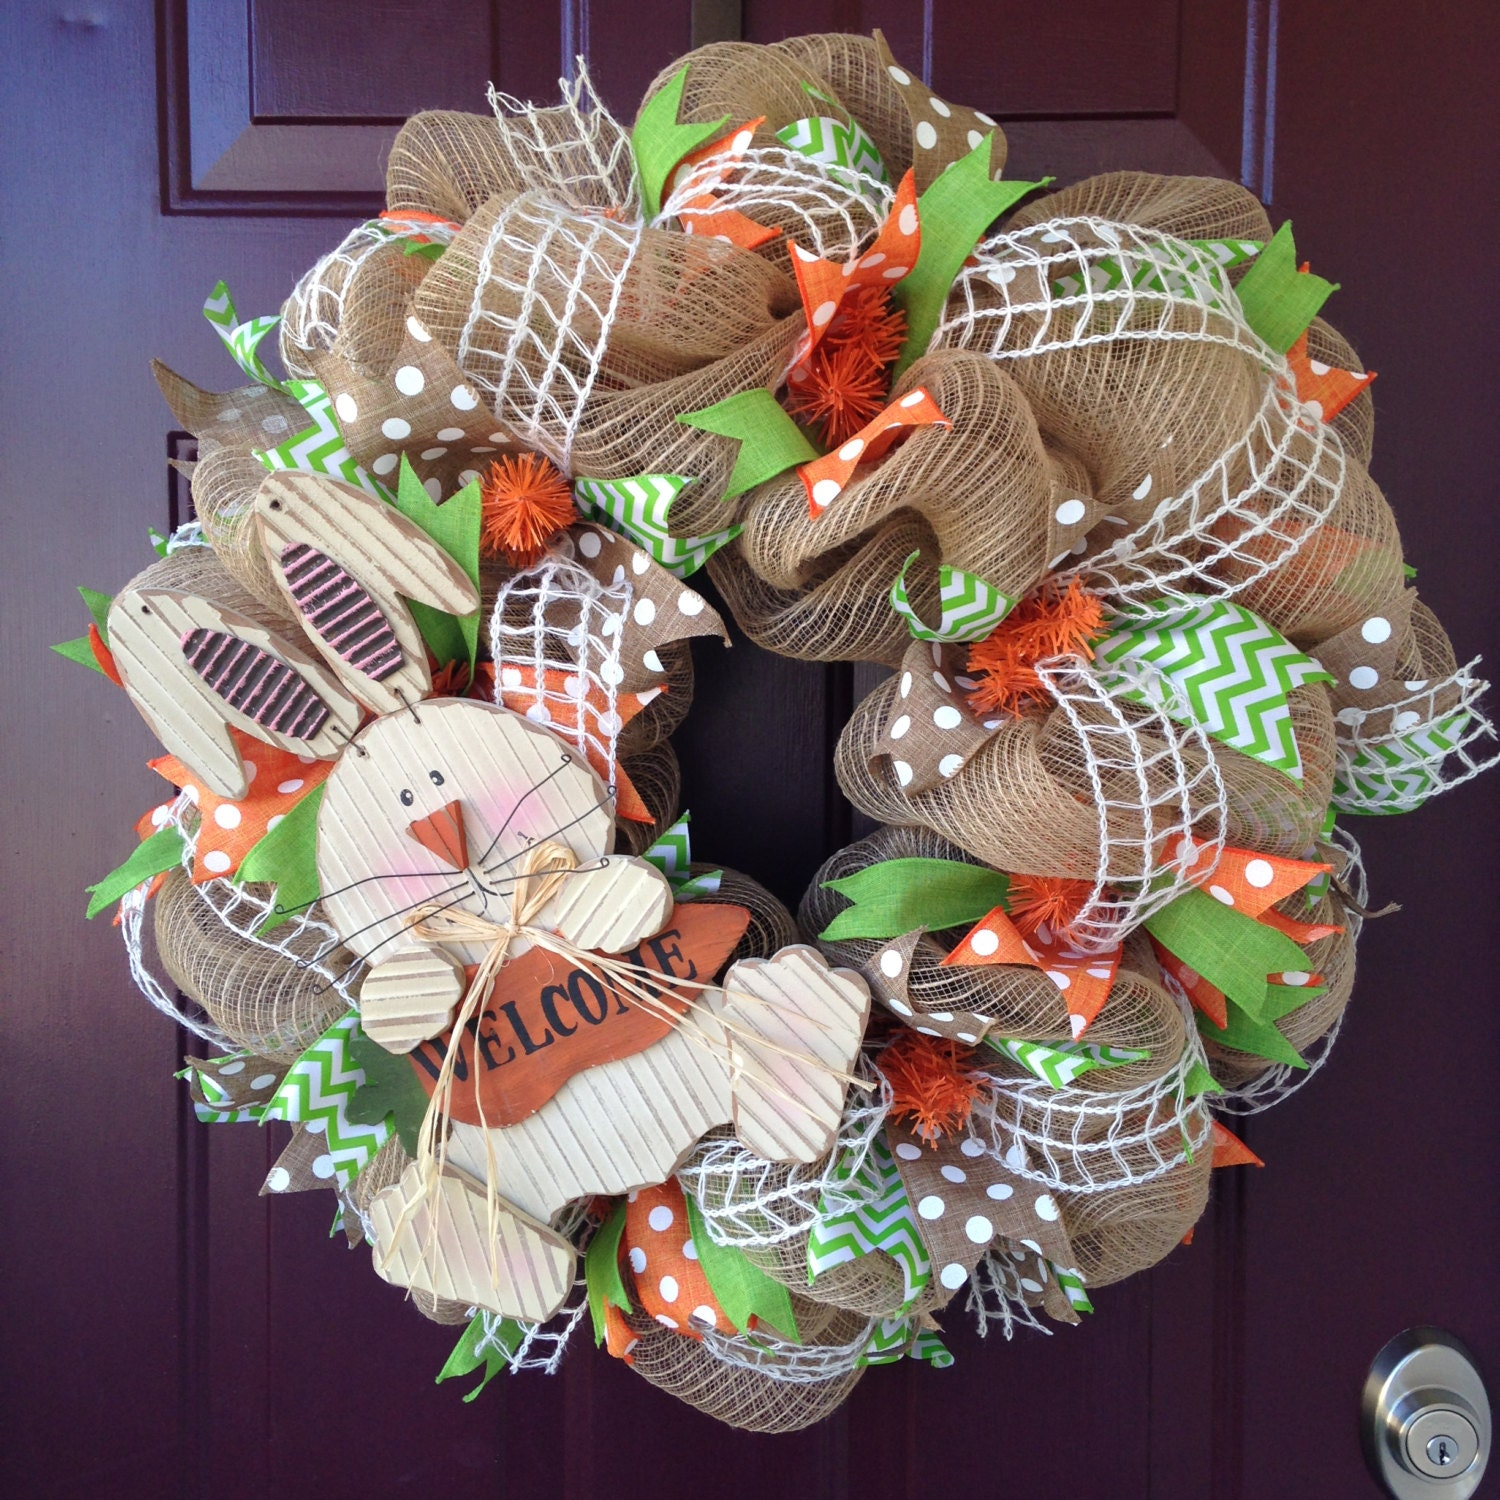 Burlap Bunny Easter Wreath With Green And Orange Accents